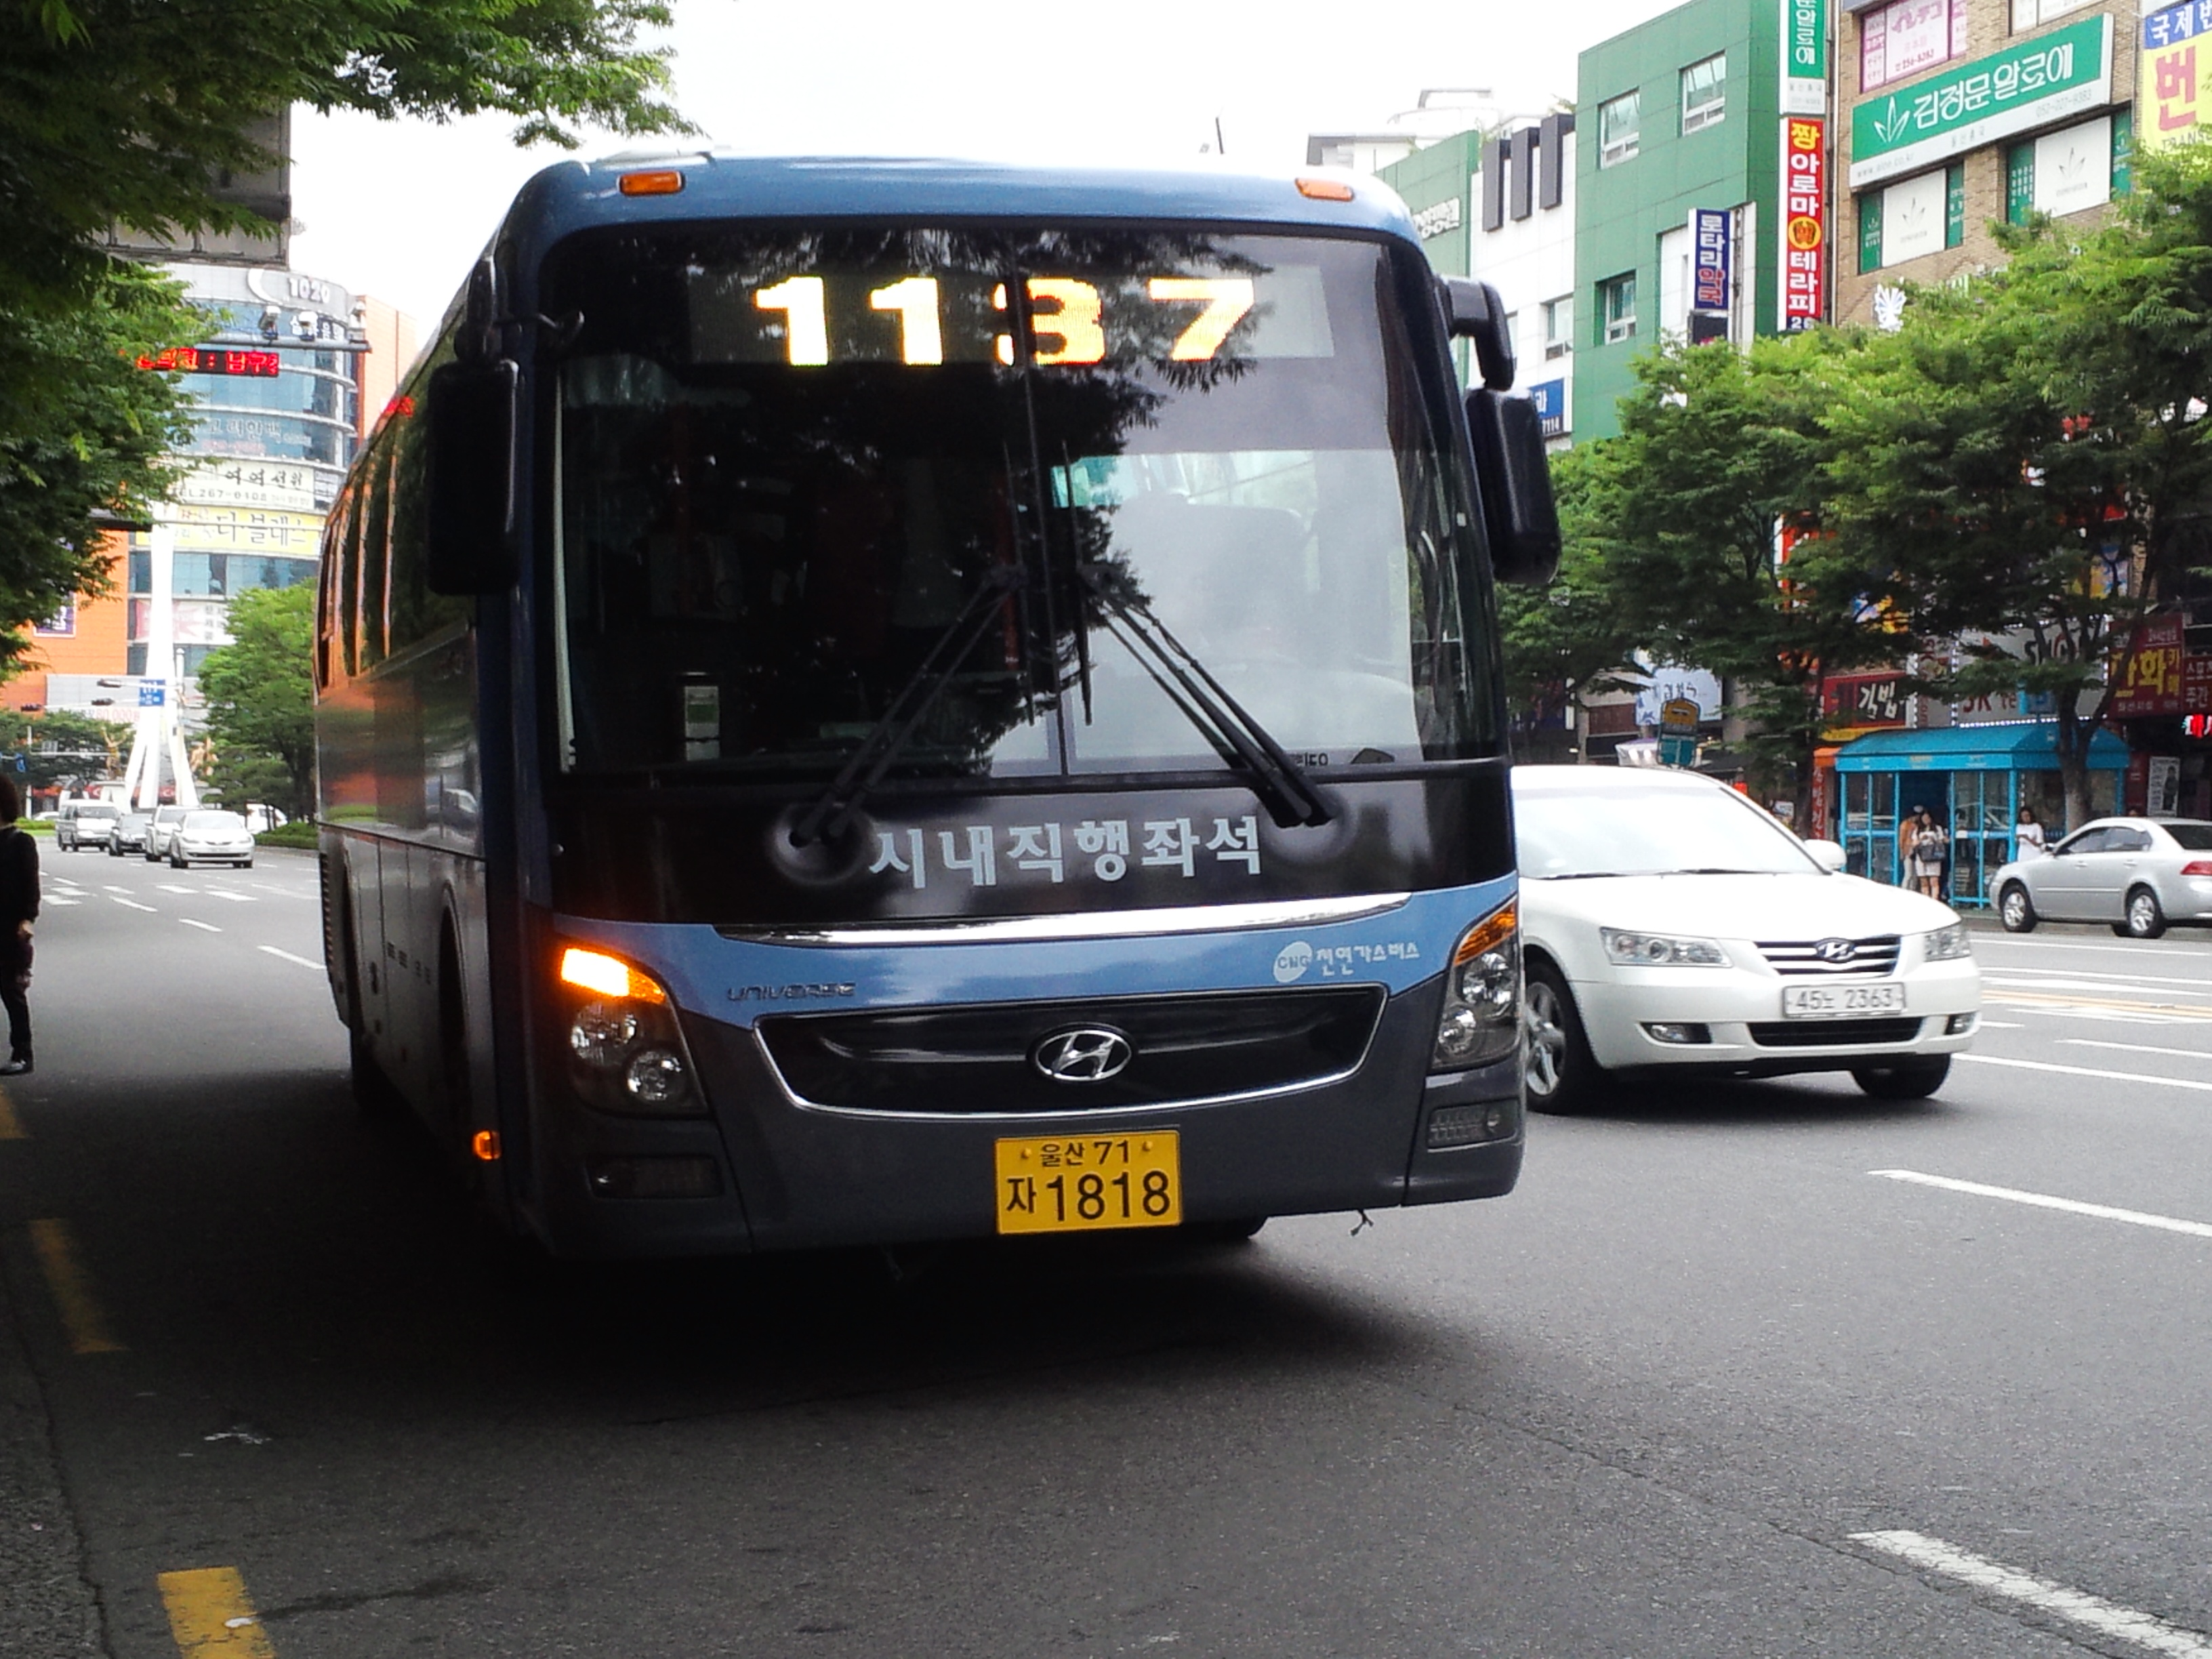 File:Ulsan Bus 1137 (Direct Seat) - Namseong Passenger.jpg